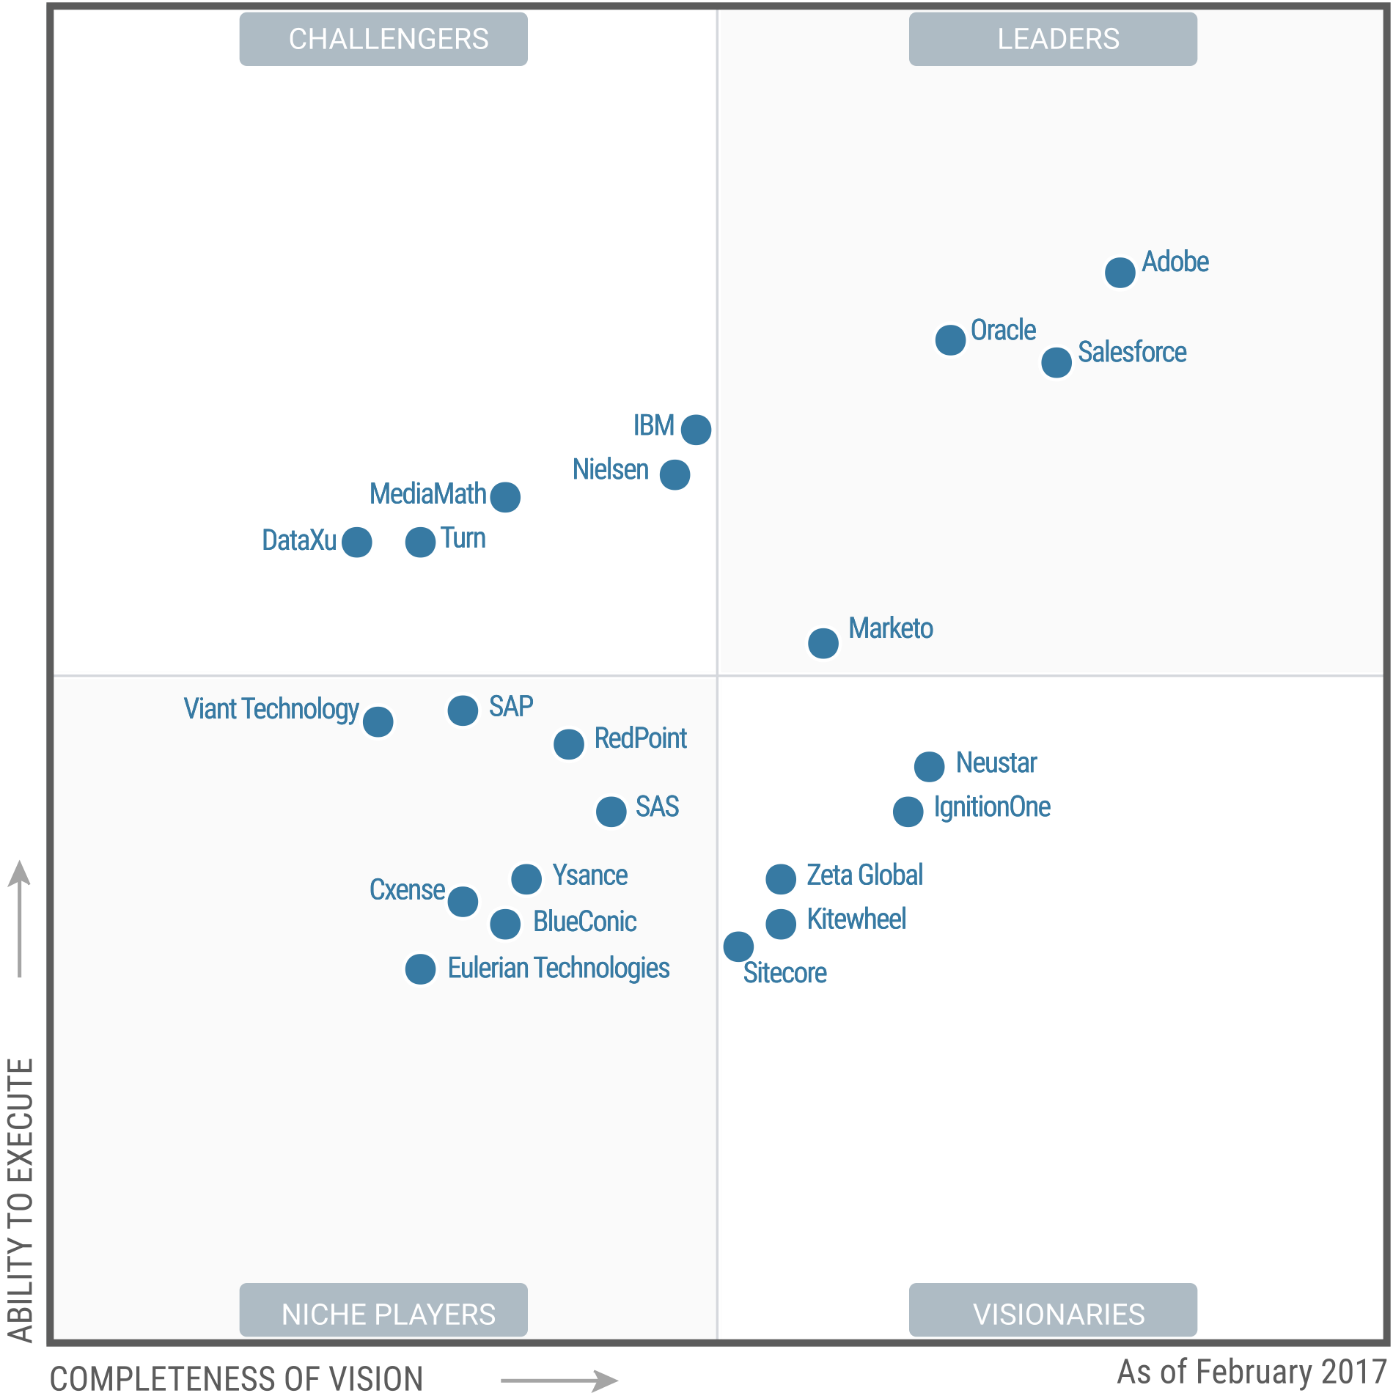 Magic Quadrant for Digital Marketing Hubs 2017 (G00299410)